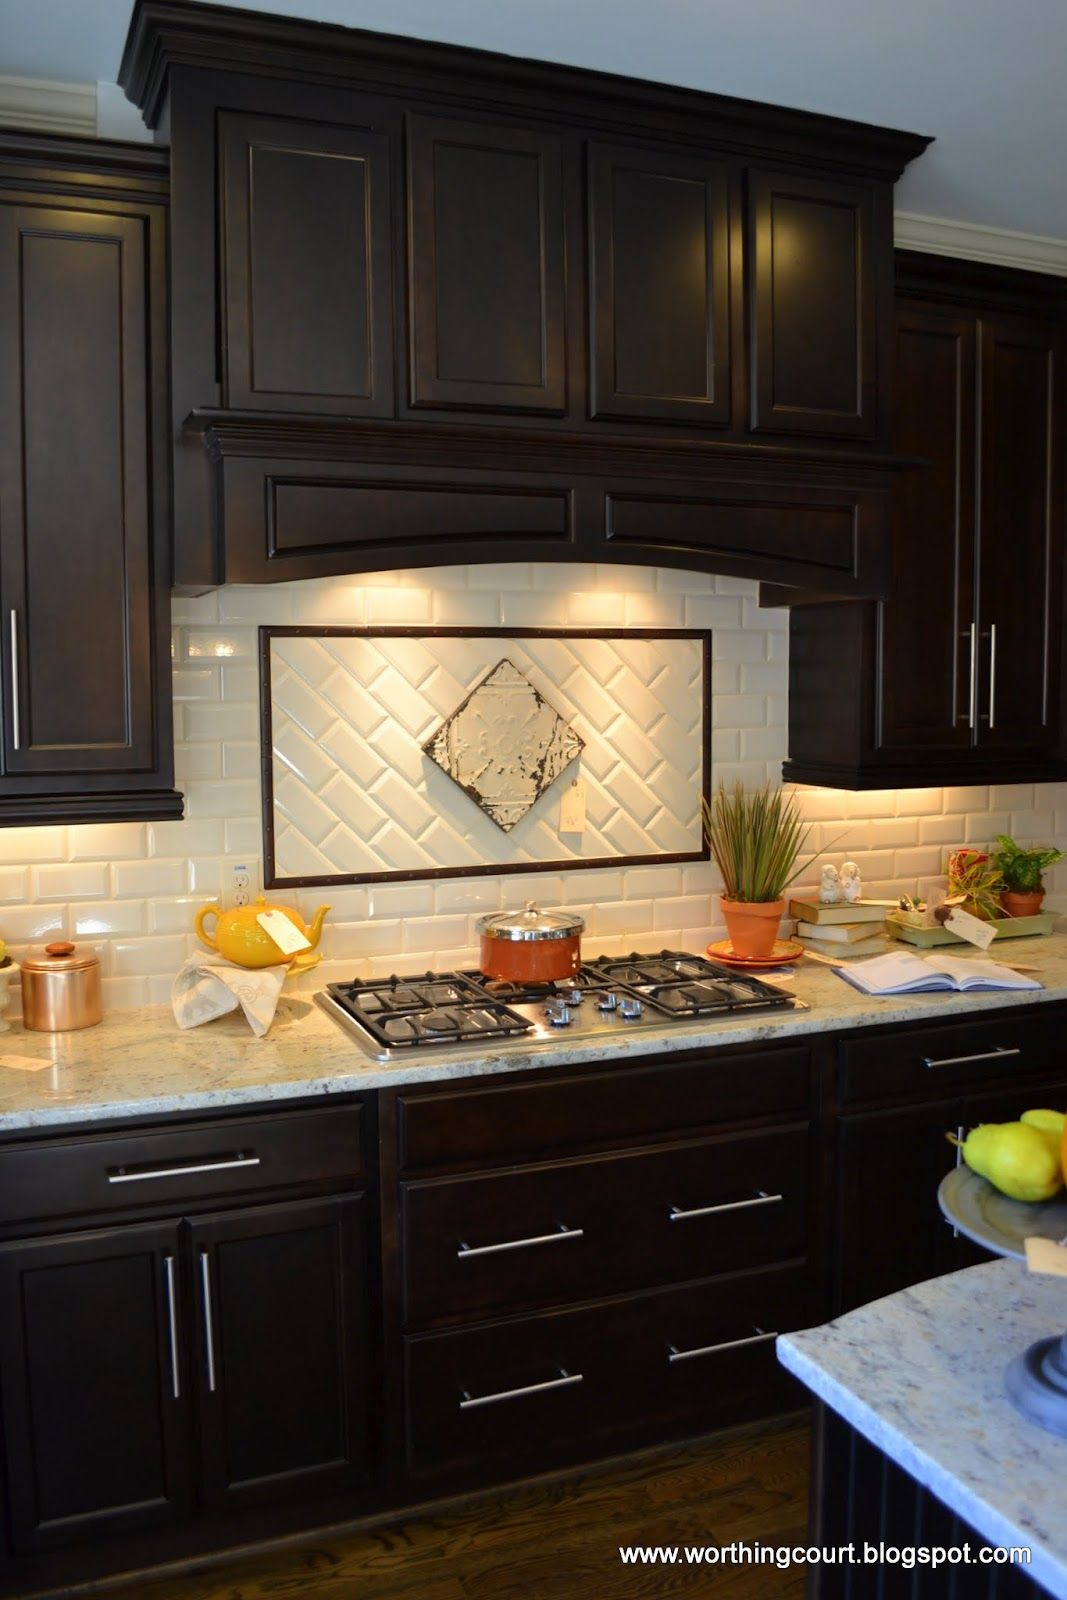 kitchen cabinets backsplash ideas photo - 6